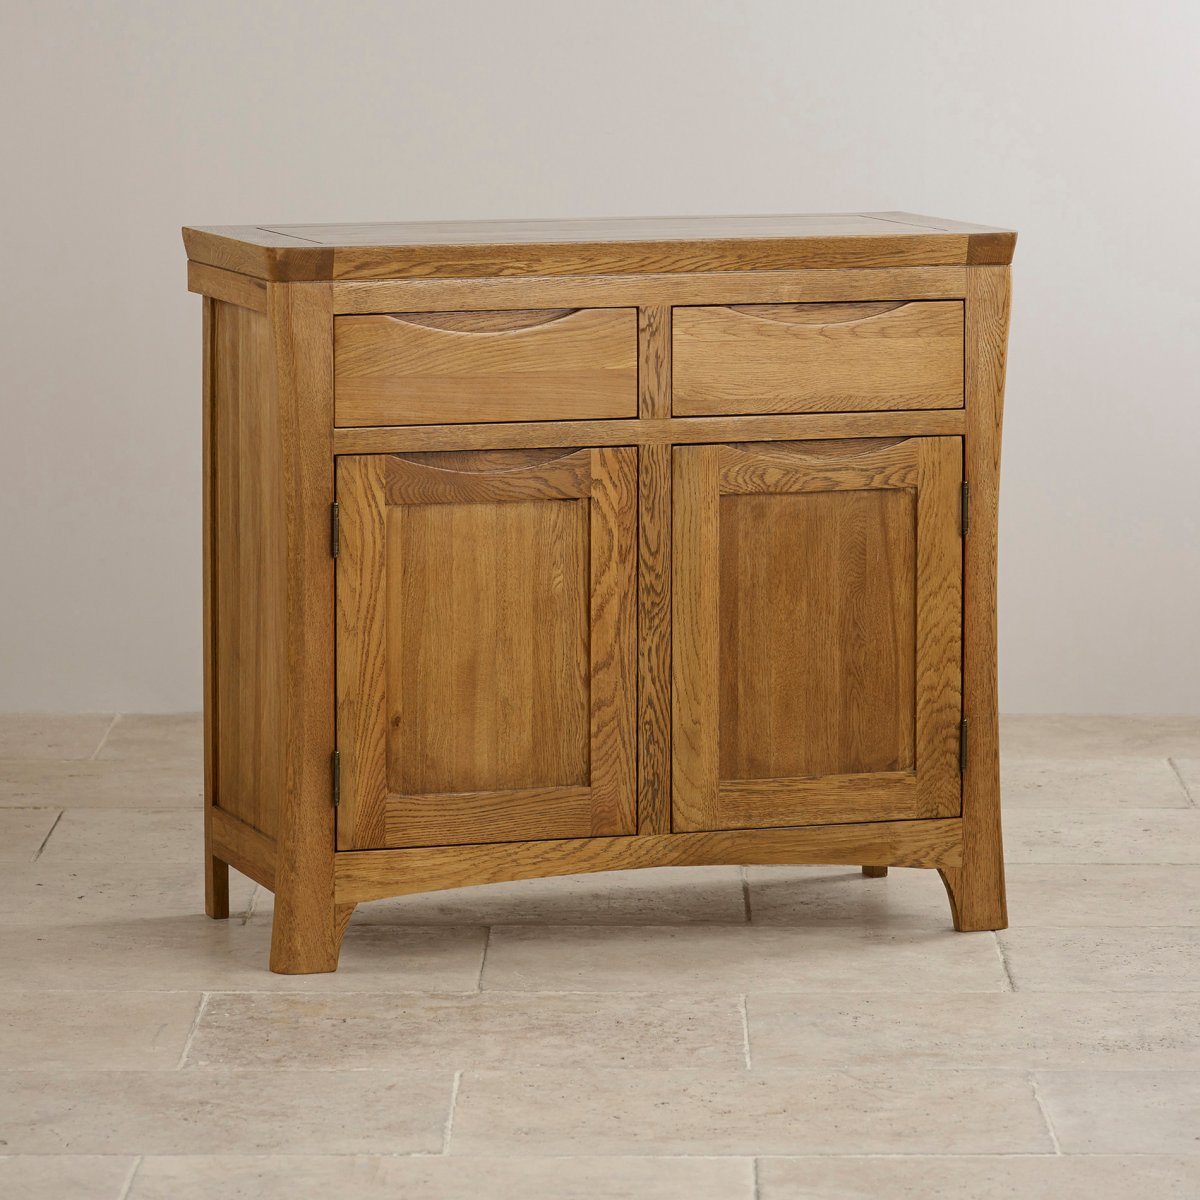 Orrick small sideboard in rustic solid oak oak furniture for Solid oak furniture